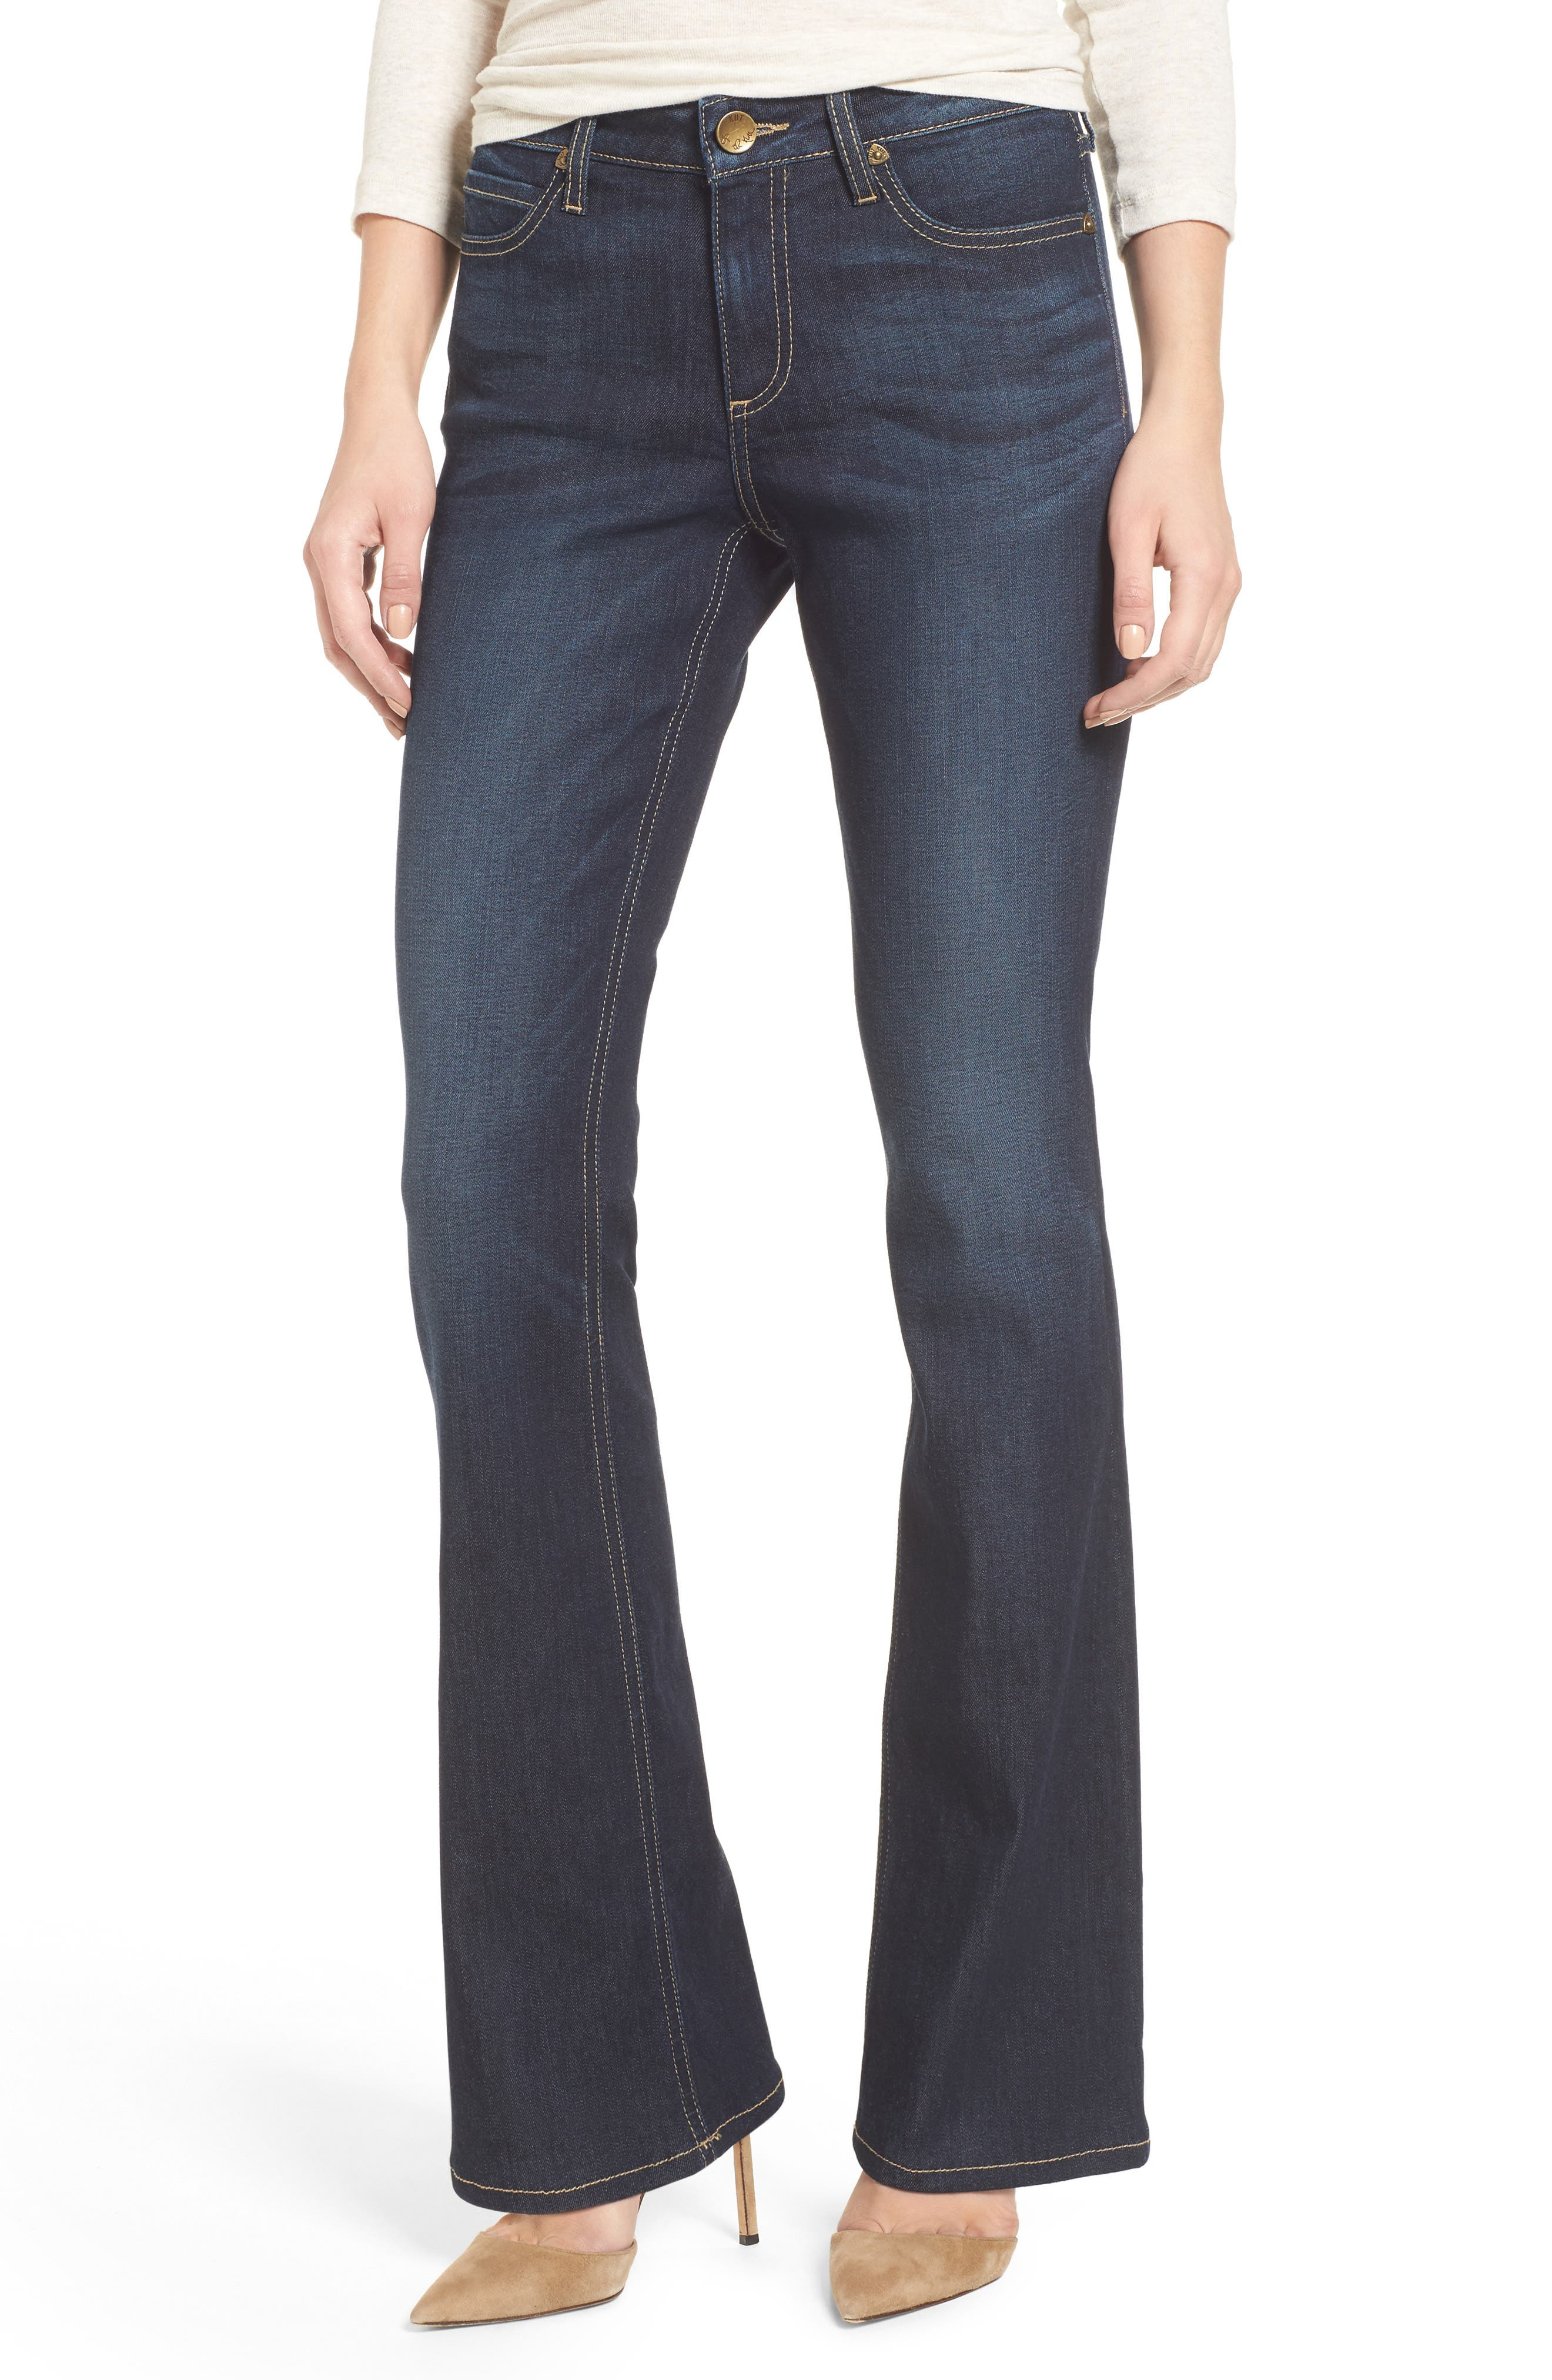 KUT from the Kloth Natalie Curvy Fit Bootleg Jeans (Admirably) (Regular & Petite)